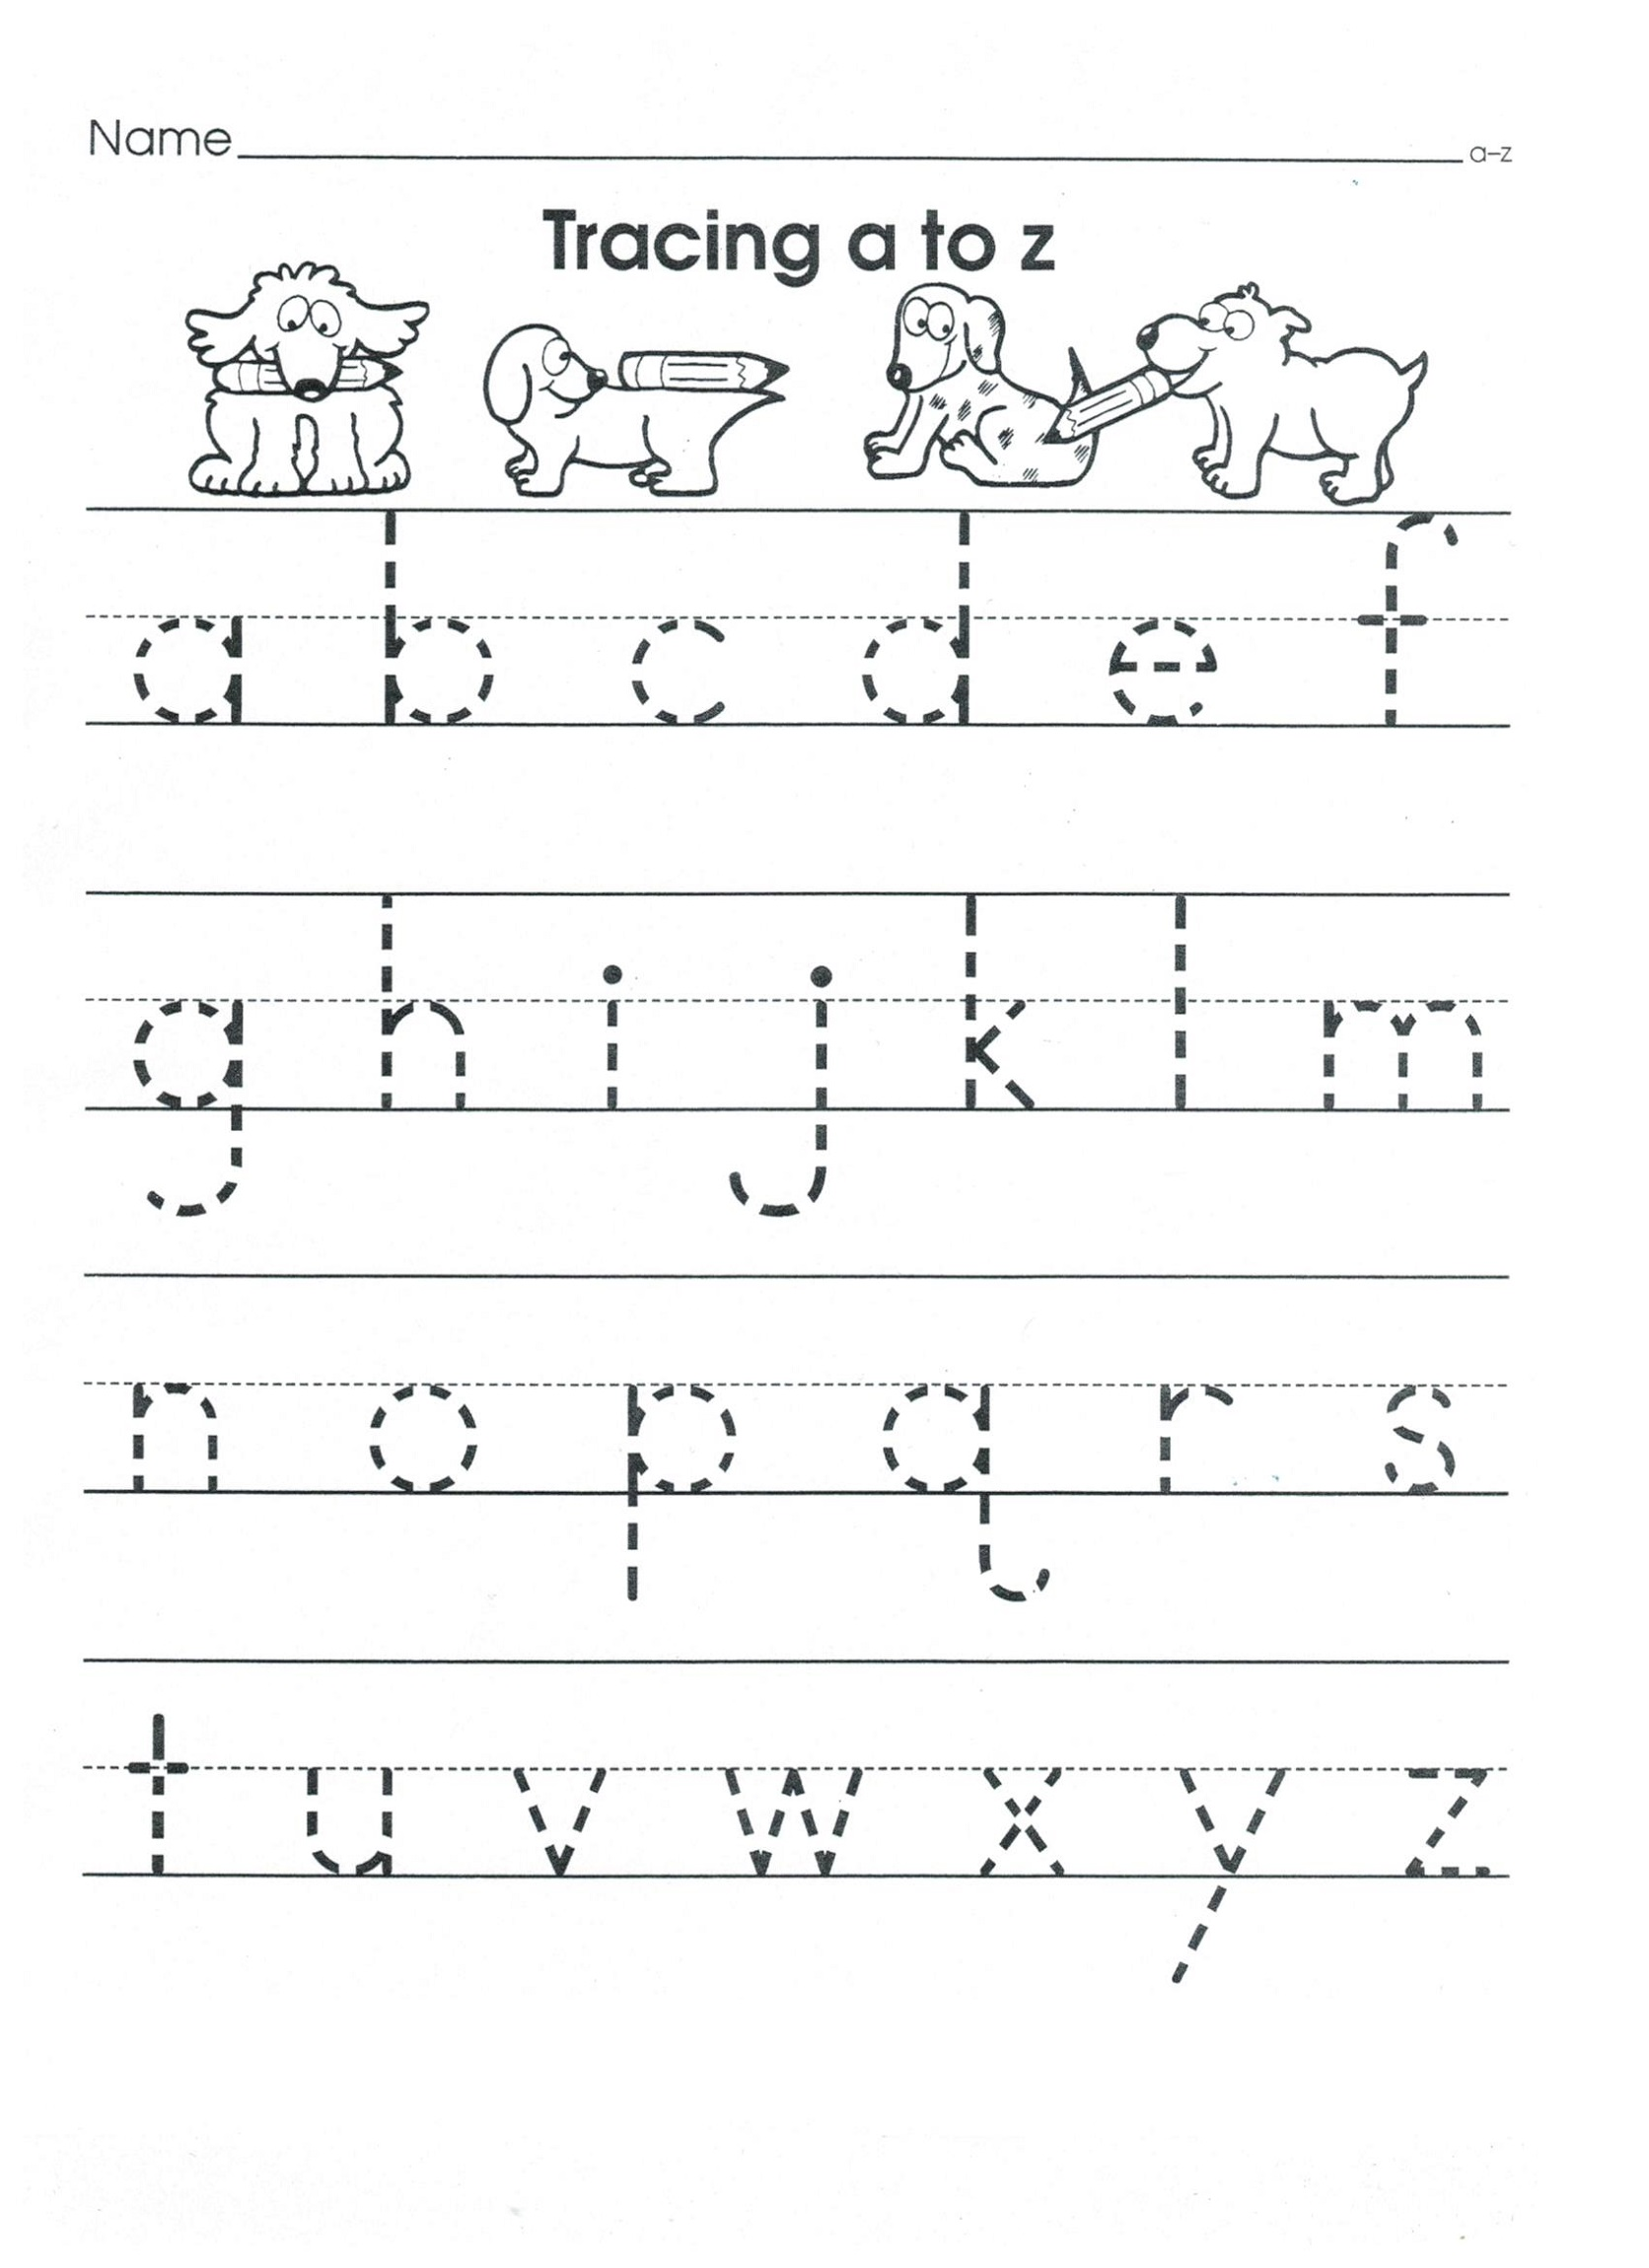 ABC Tracing Sheets for Preschool | 101 Activity